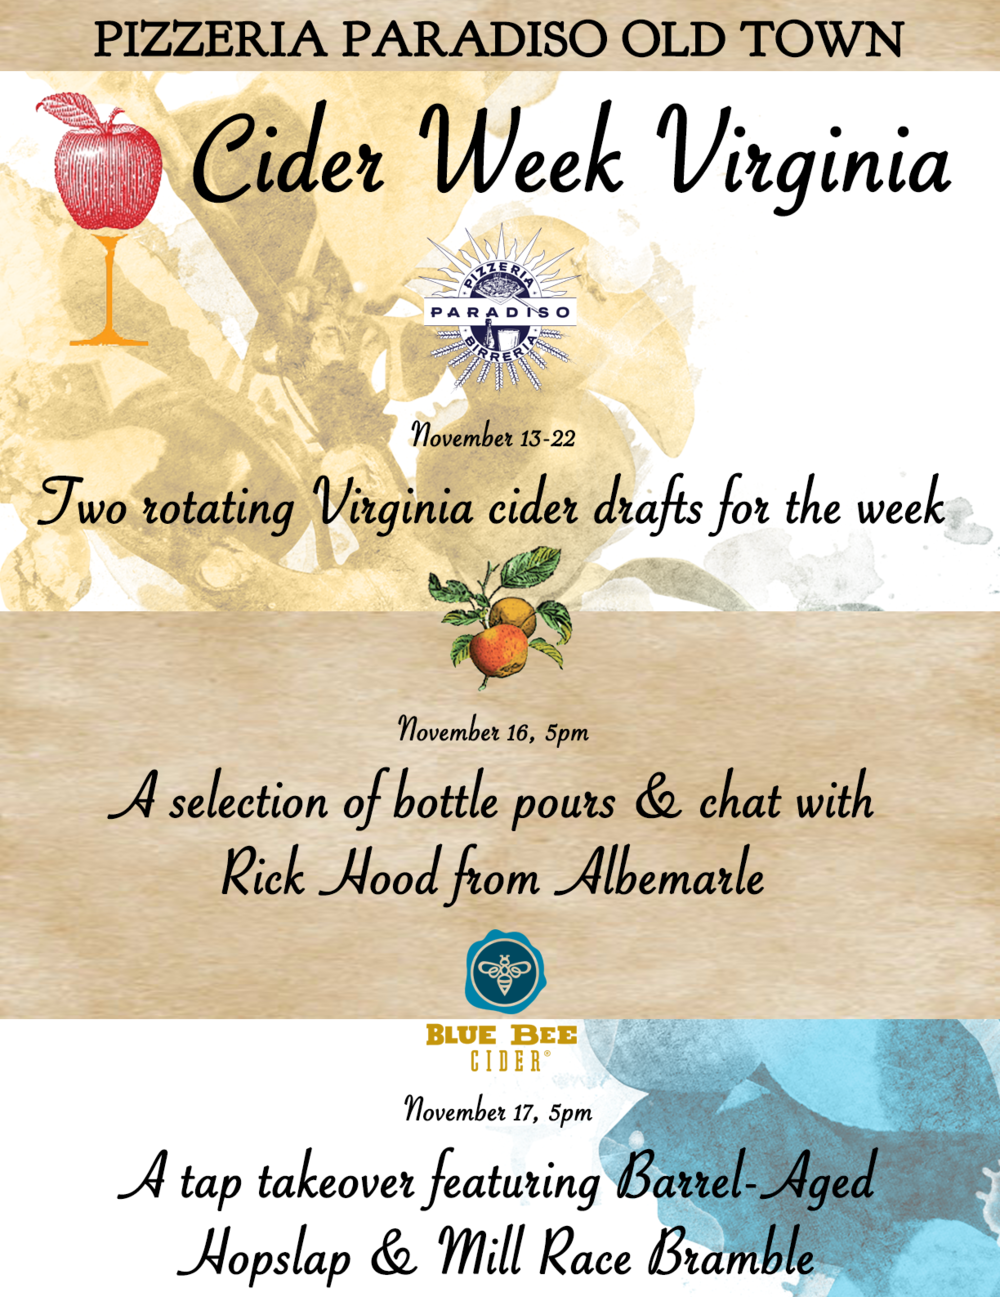 cider-week-virginia-112015-3.png